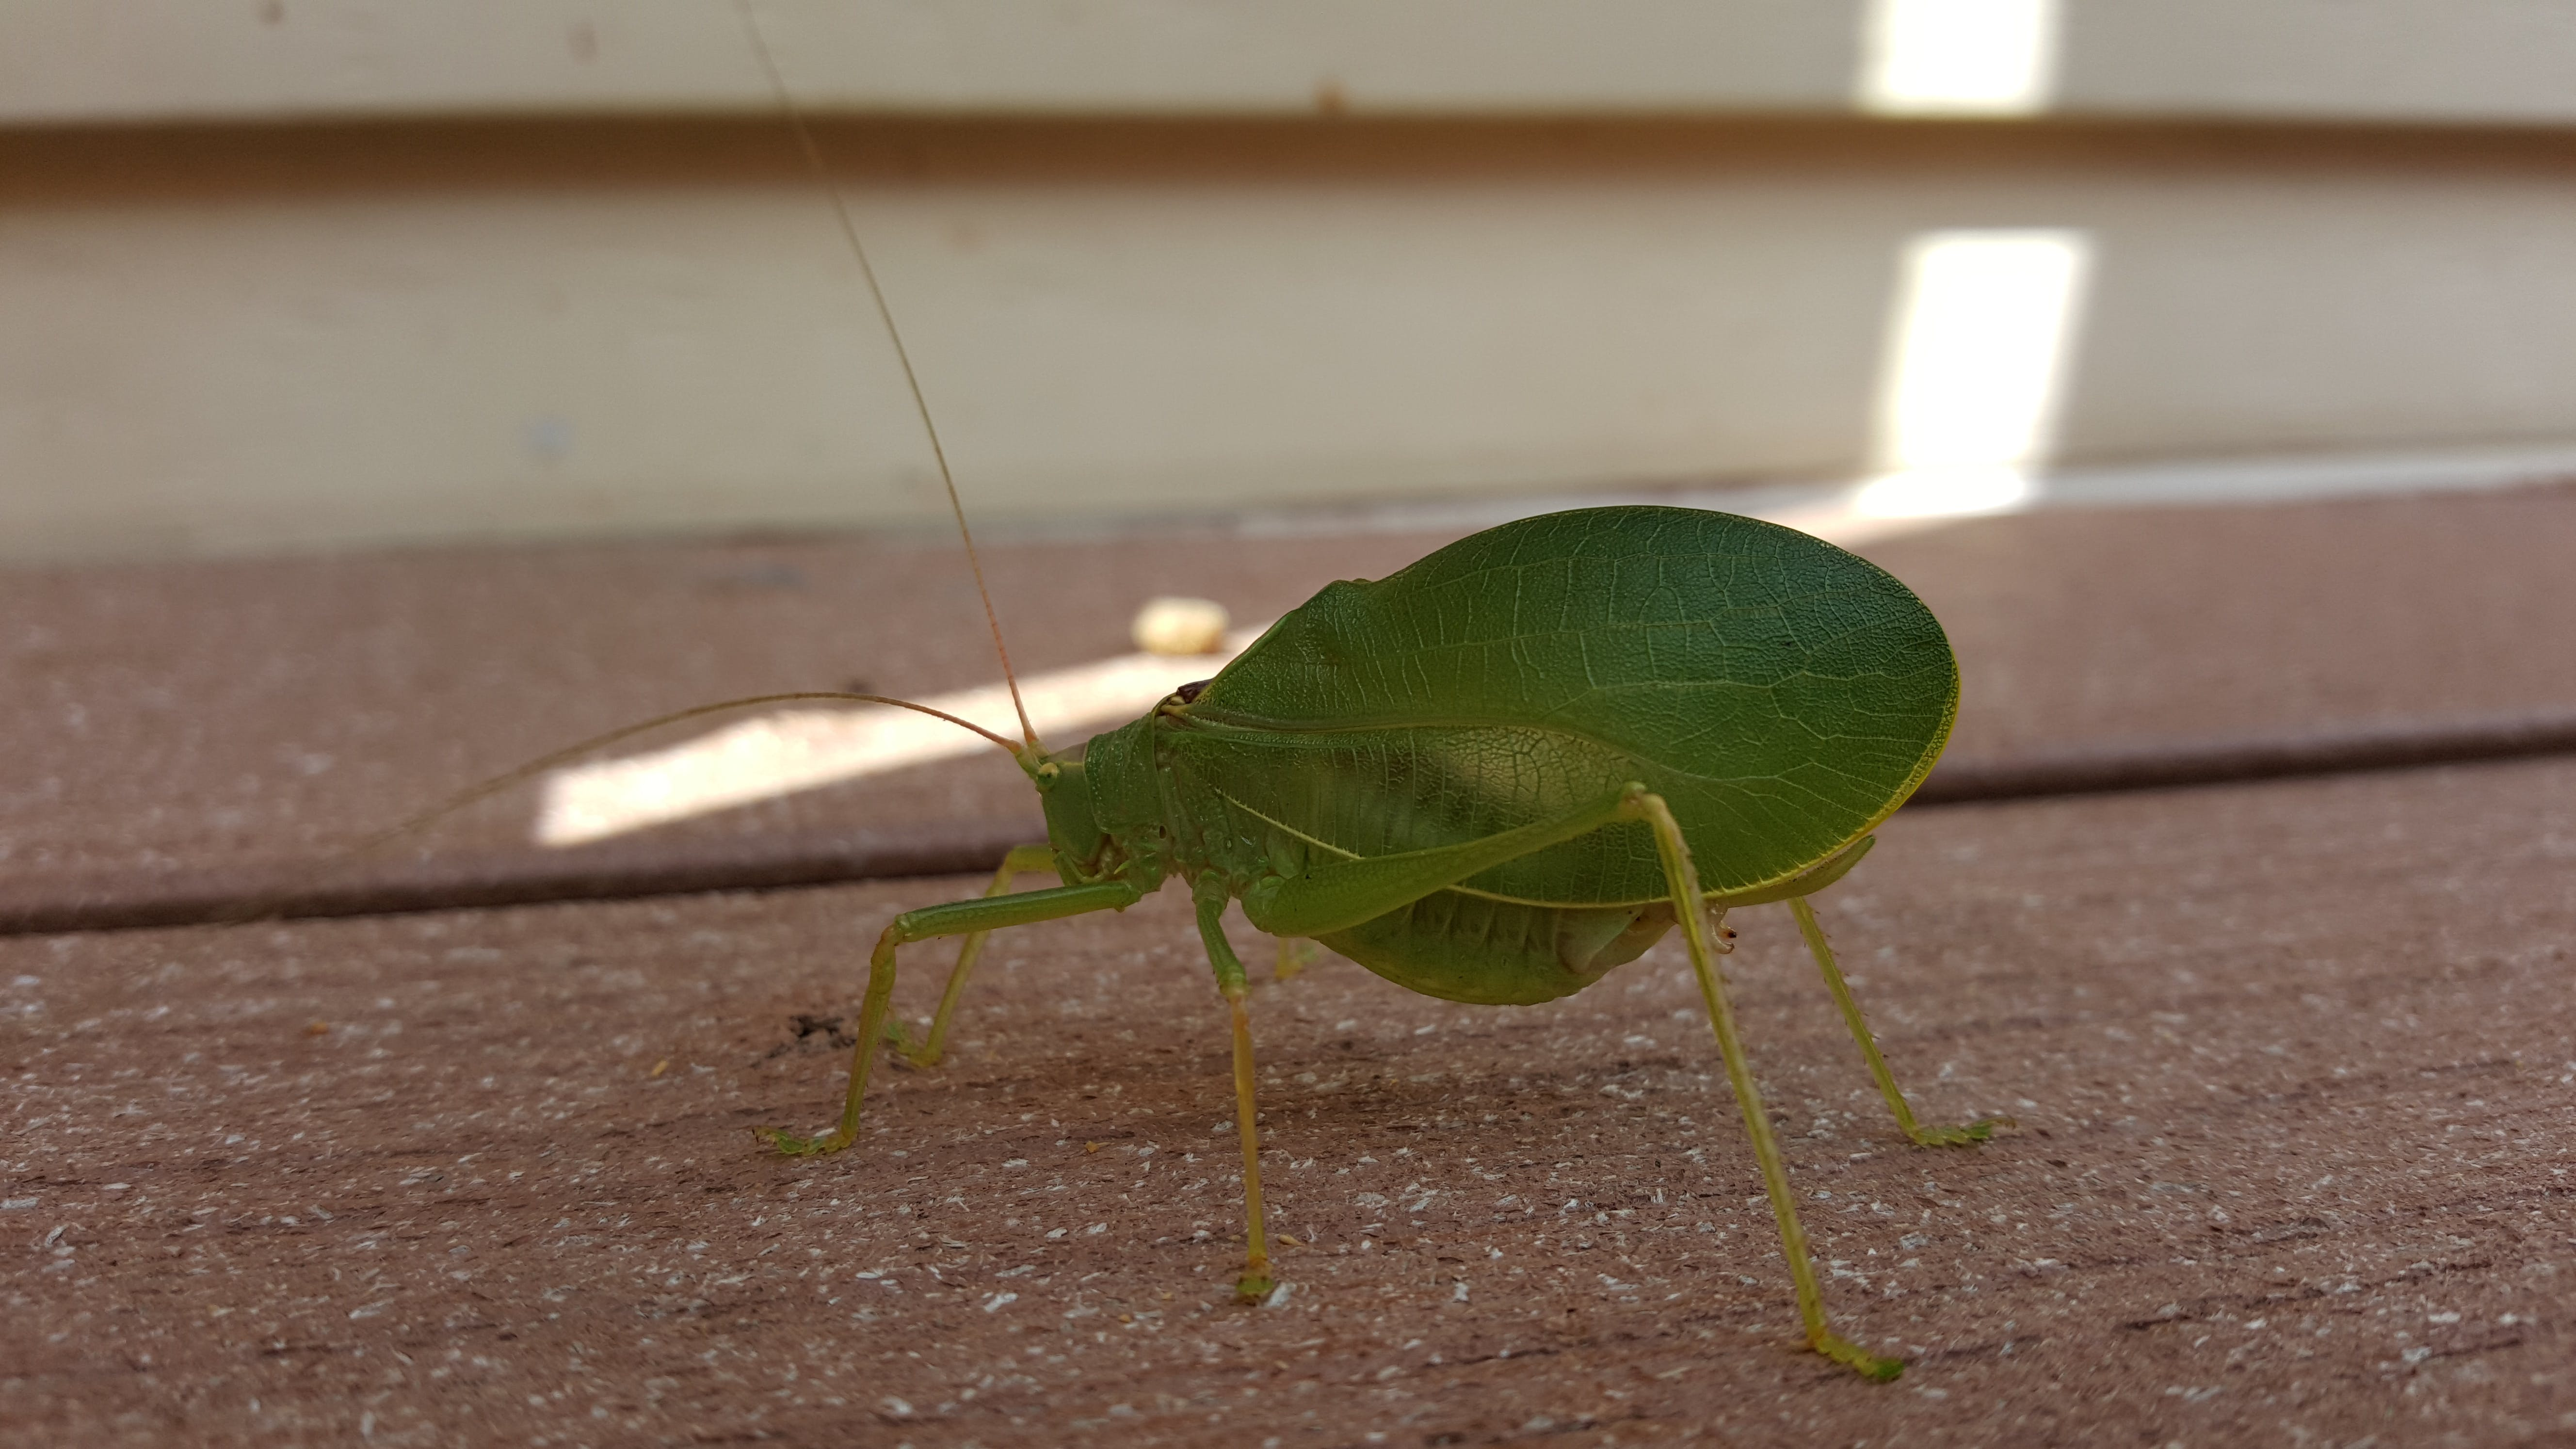 Free stock photo of bug, leaf cutter